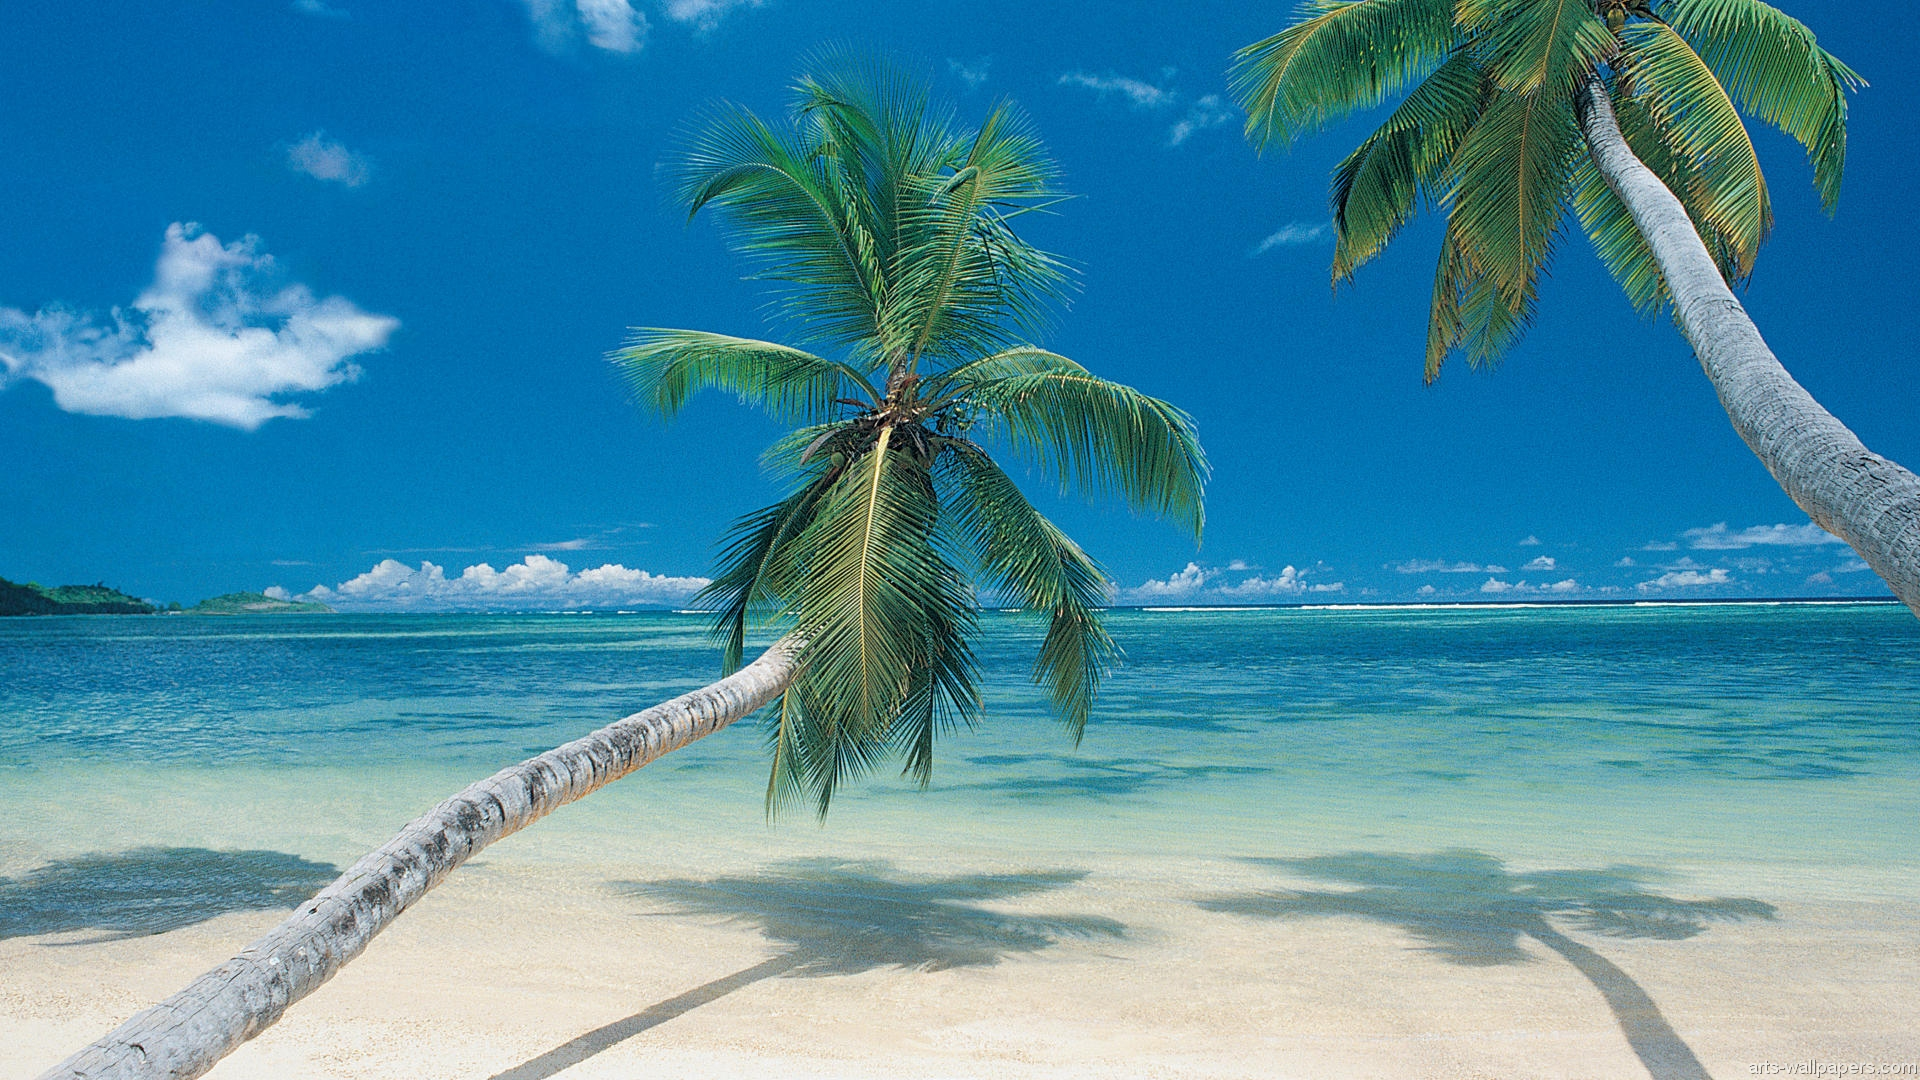 of pictures of tropical paradise beaches High Resolution Wallpaper 1920x1080